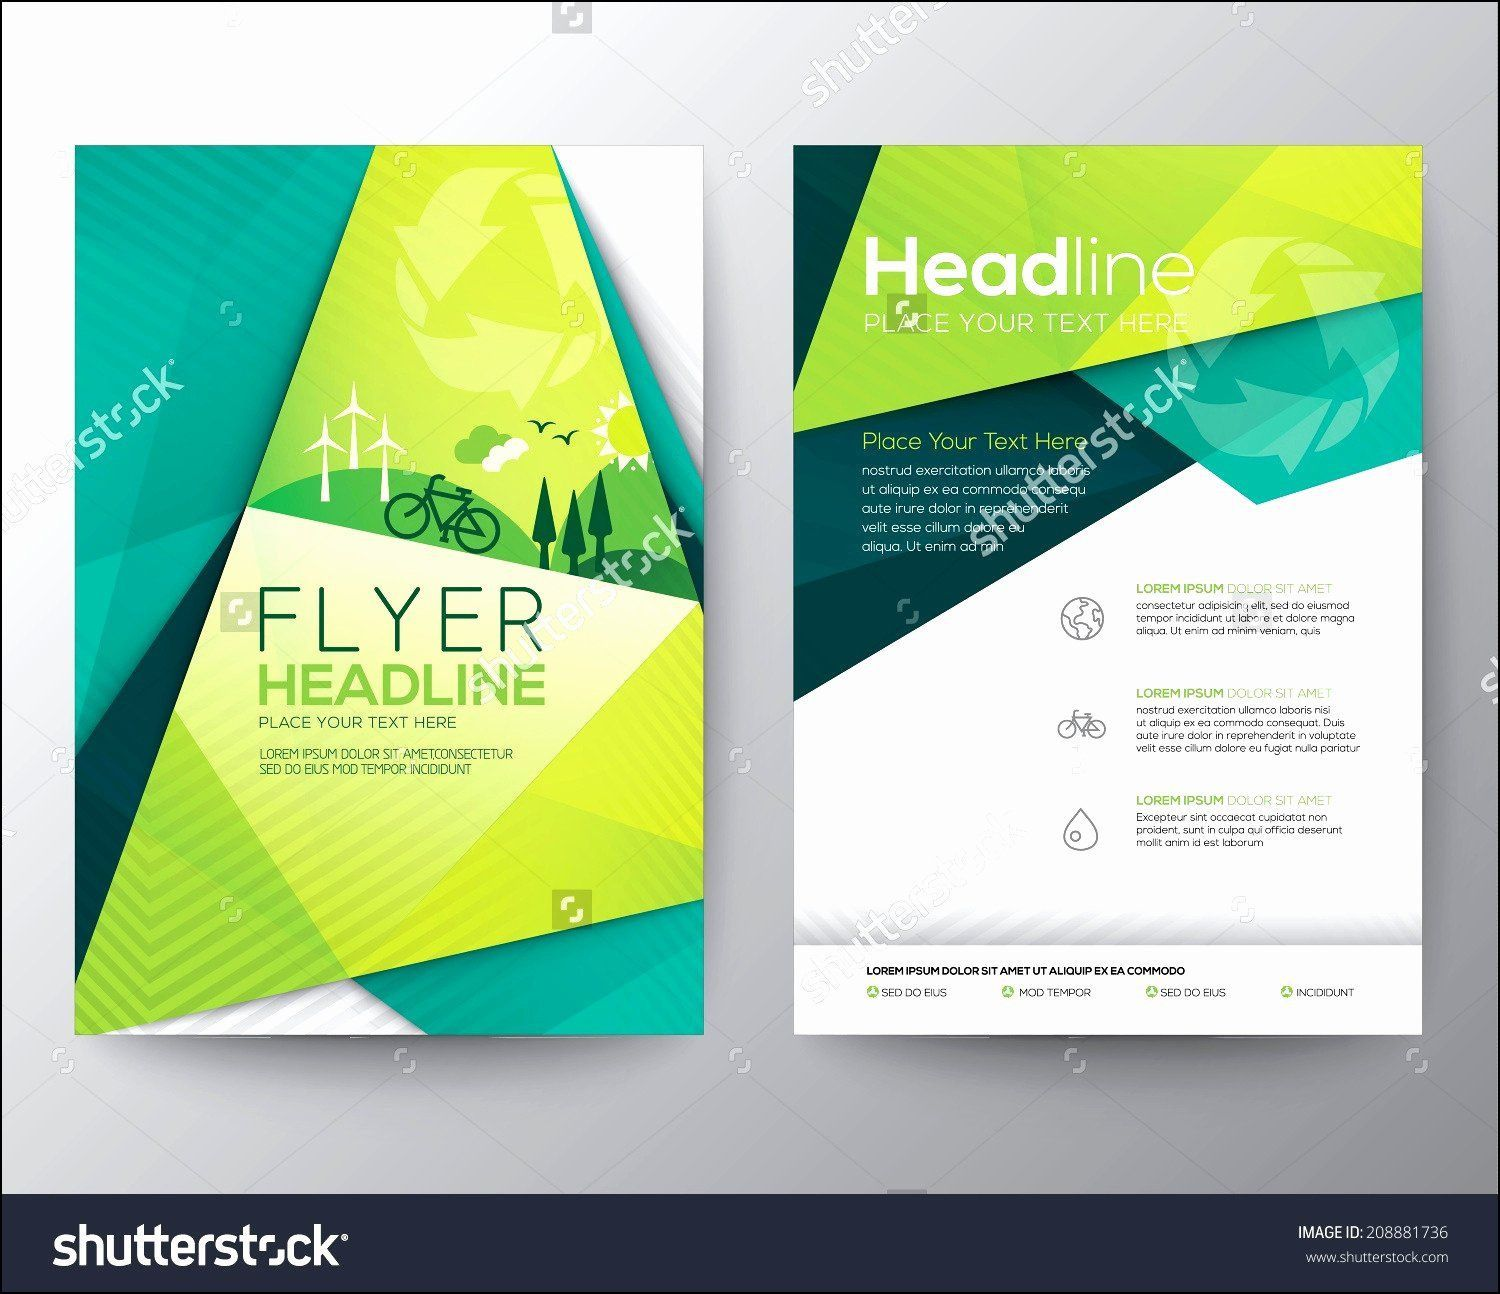 000 Dreaded Free Download Flyer Template Photo  Photoshop For Microsoft Word Downloadable PublisherFull